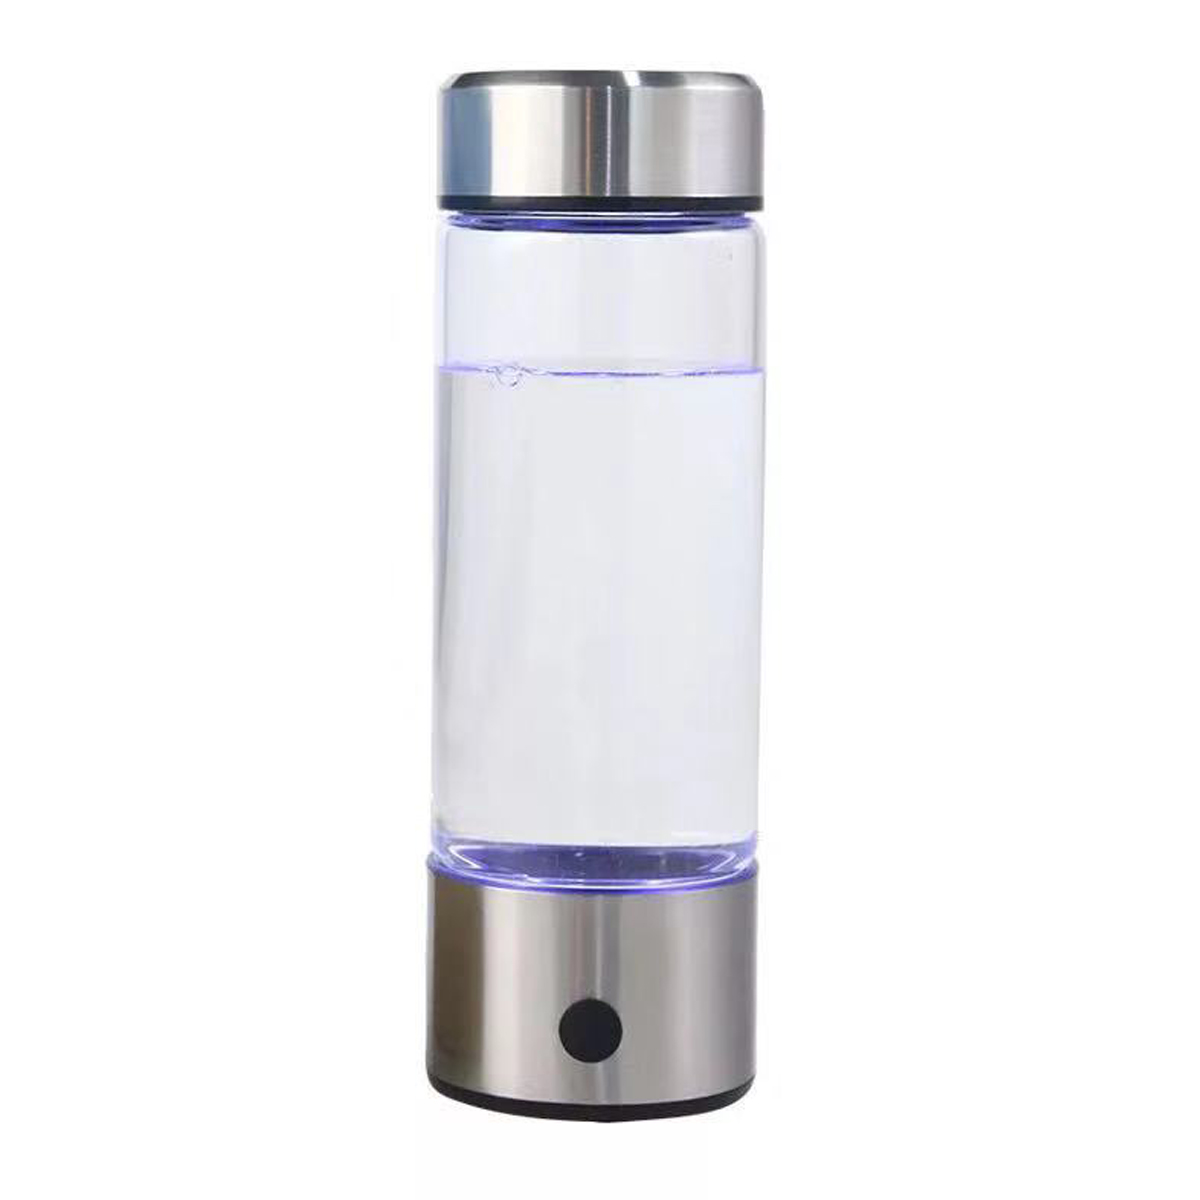 420ML Portable Hydrogens Water Generator Alkaline Maker Bottle USB Rechargeable For Pure Hydrogen-rich Water Filter Electrolysis